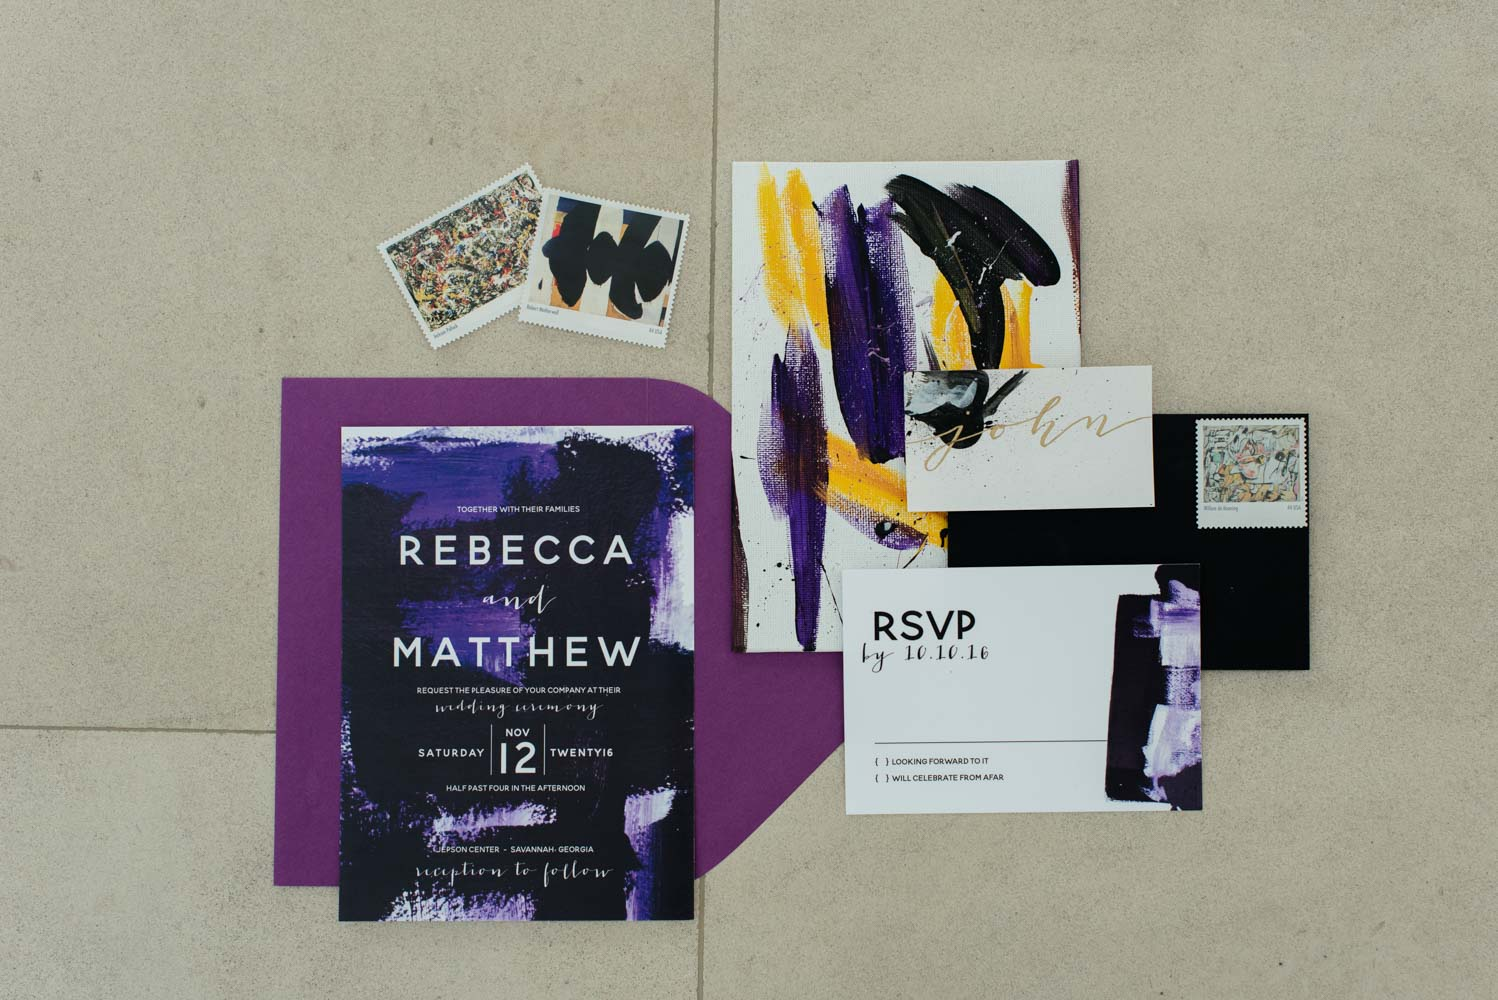 dark-purple-yellow-artistic-invitations-caroline-evan-jepson-center-48